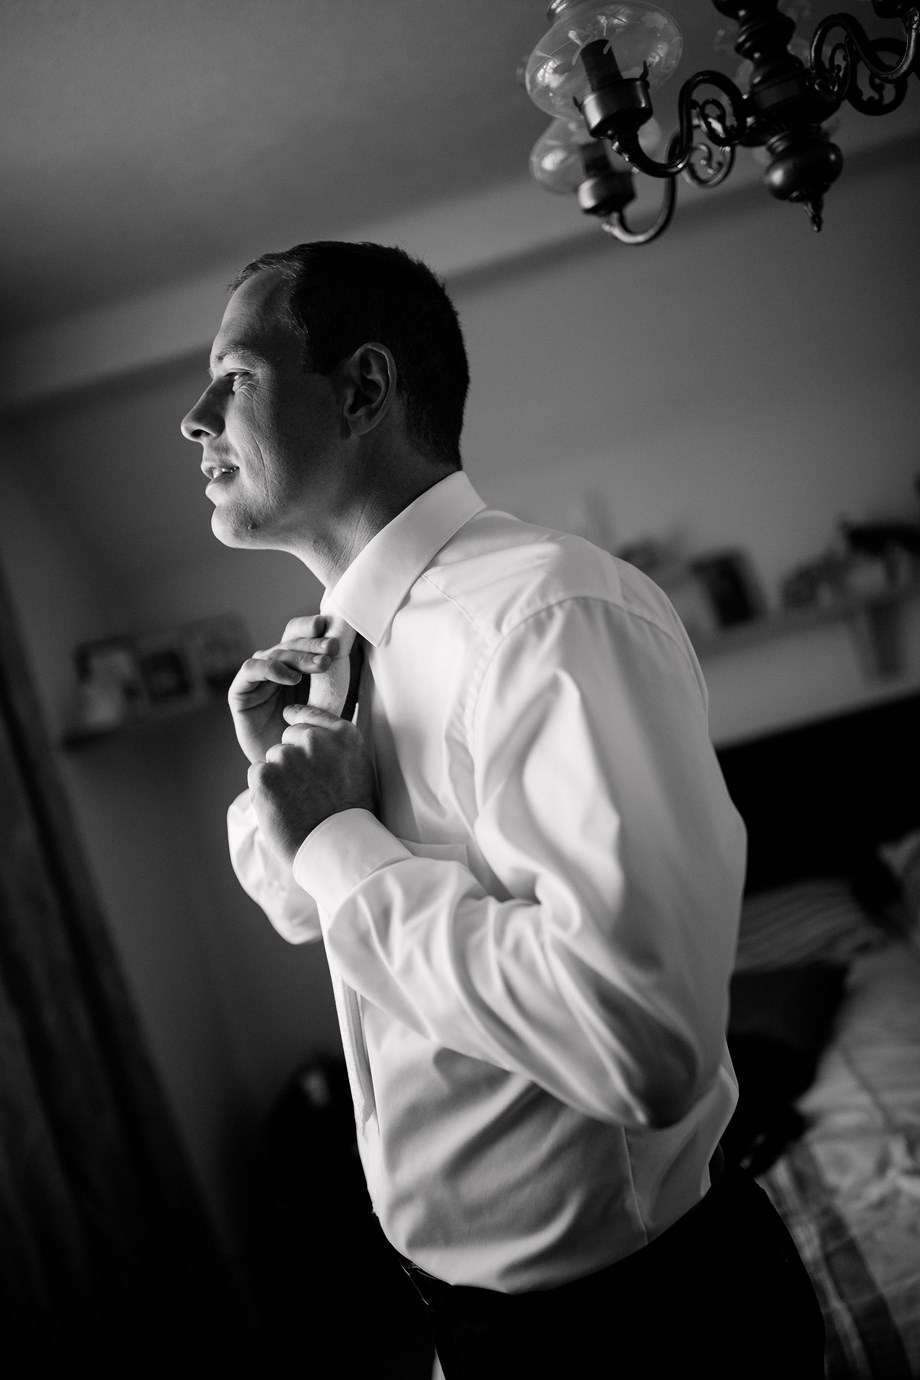 Hochzeitsfotograf: Getting Ready - Karoline Grill Photography